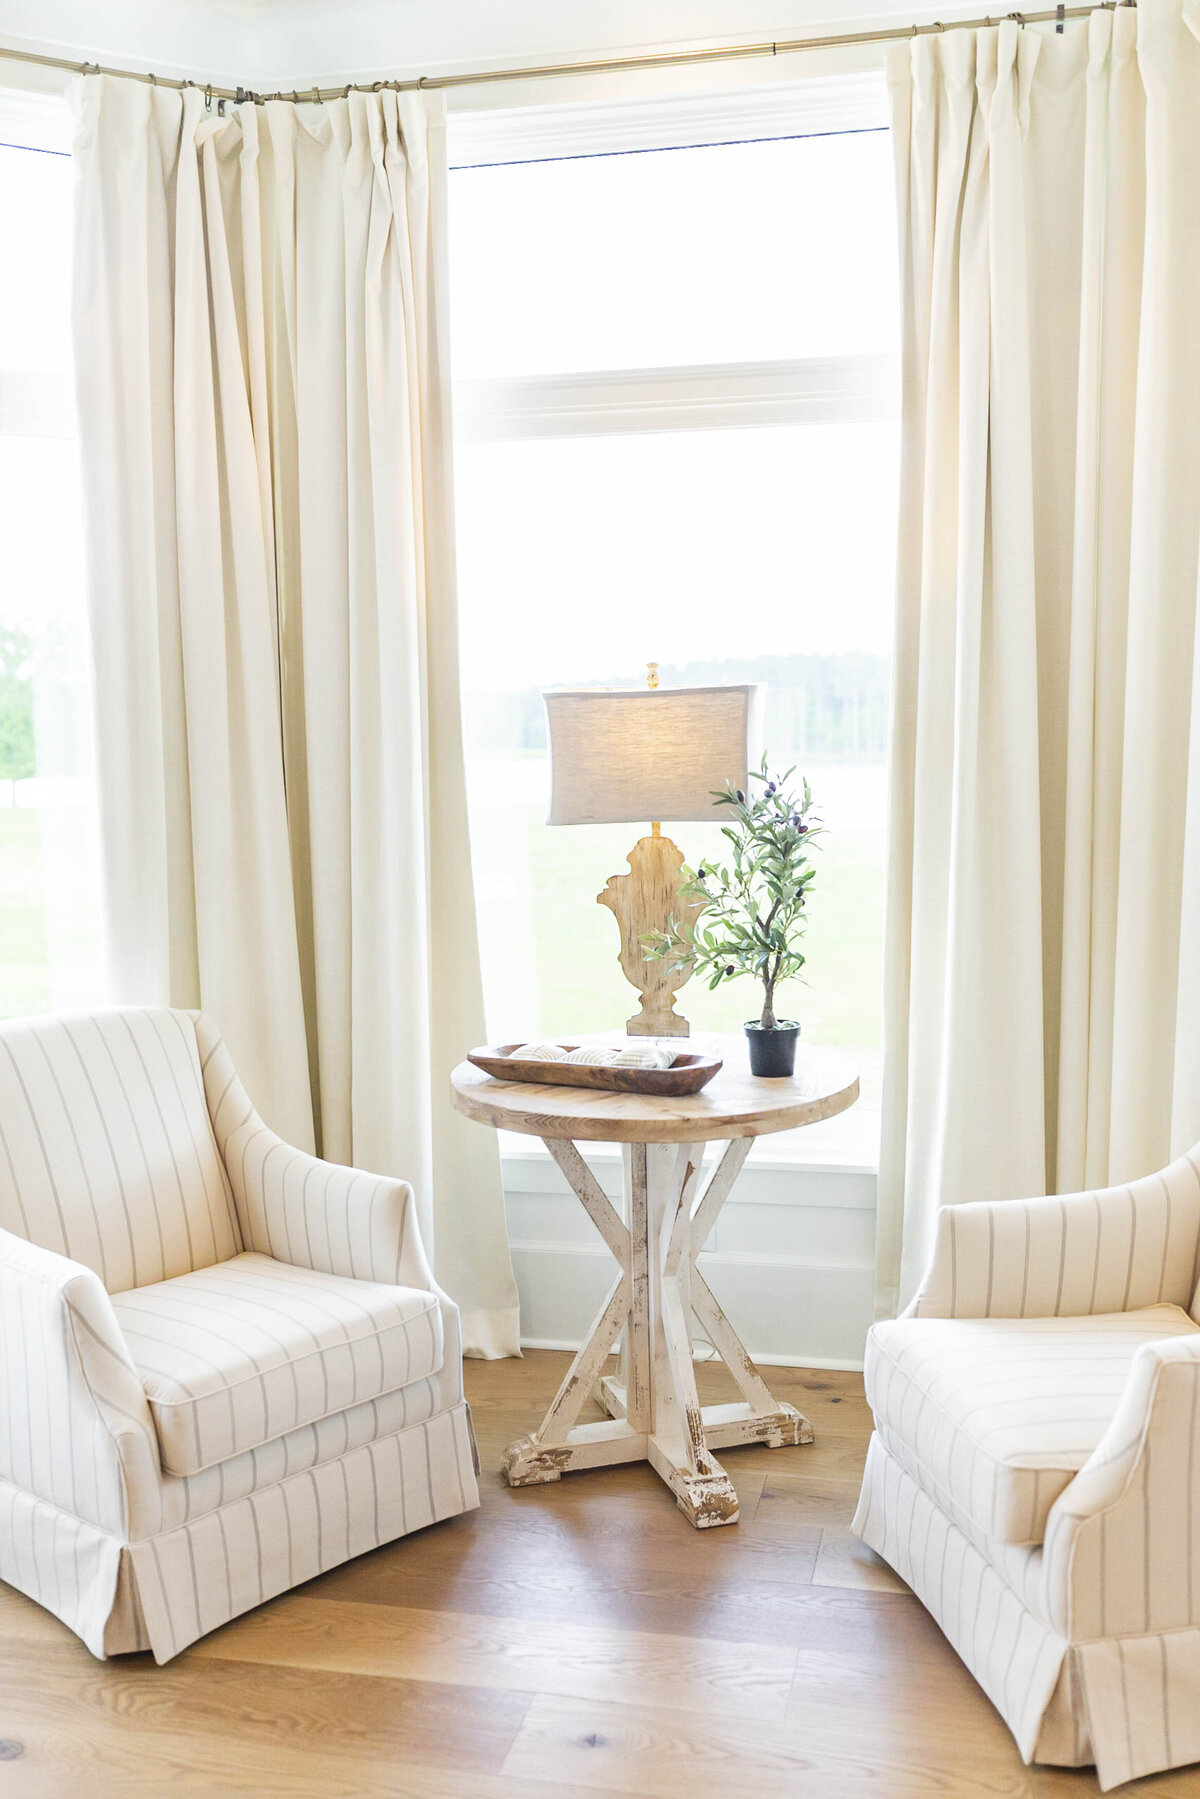 bedroom-sitting-room-inspiration-light-airy-white1